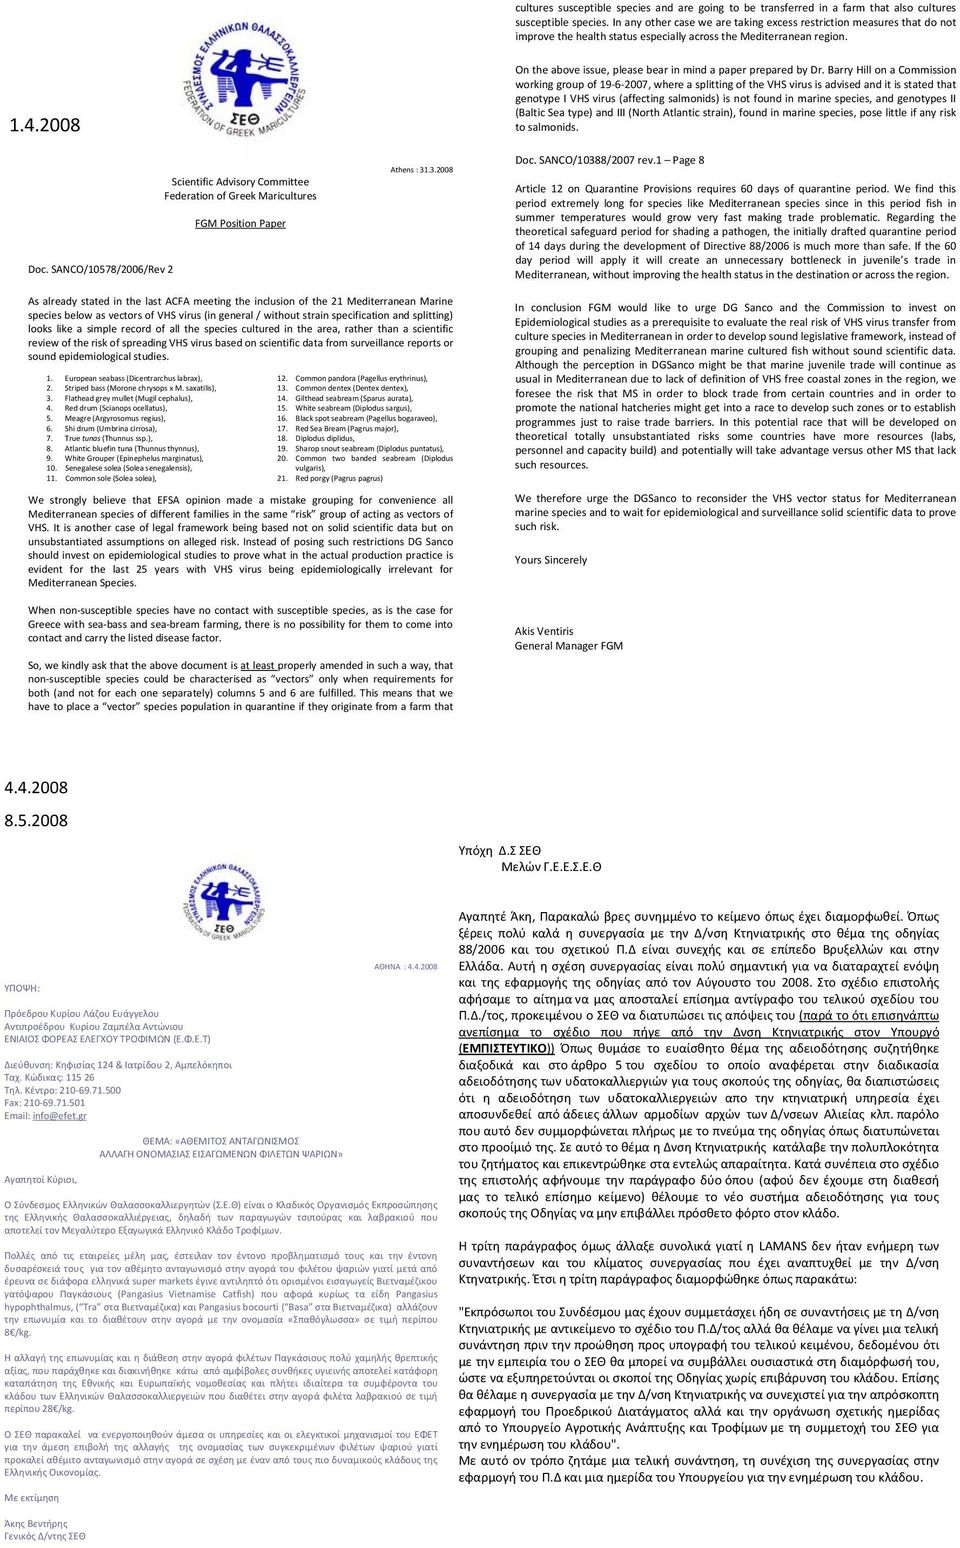 SANCO/10578/2006/Rev 2 Scientific Advisory Committee Federation of Greek Maricultures FGM Position Paper Athens : 31.3.2008 On the above issue, please bear in mind a paper prepared by Dr.